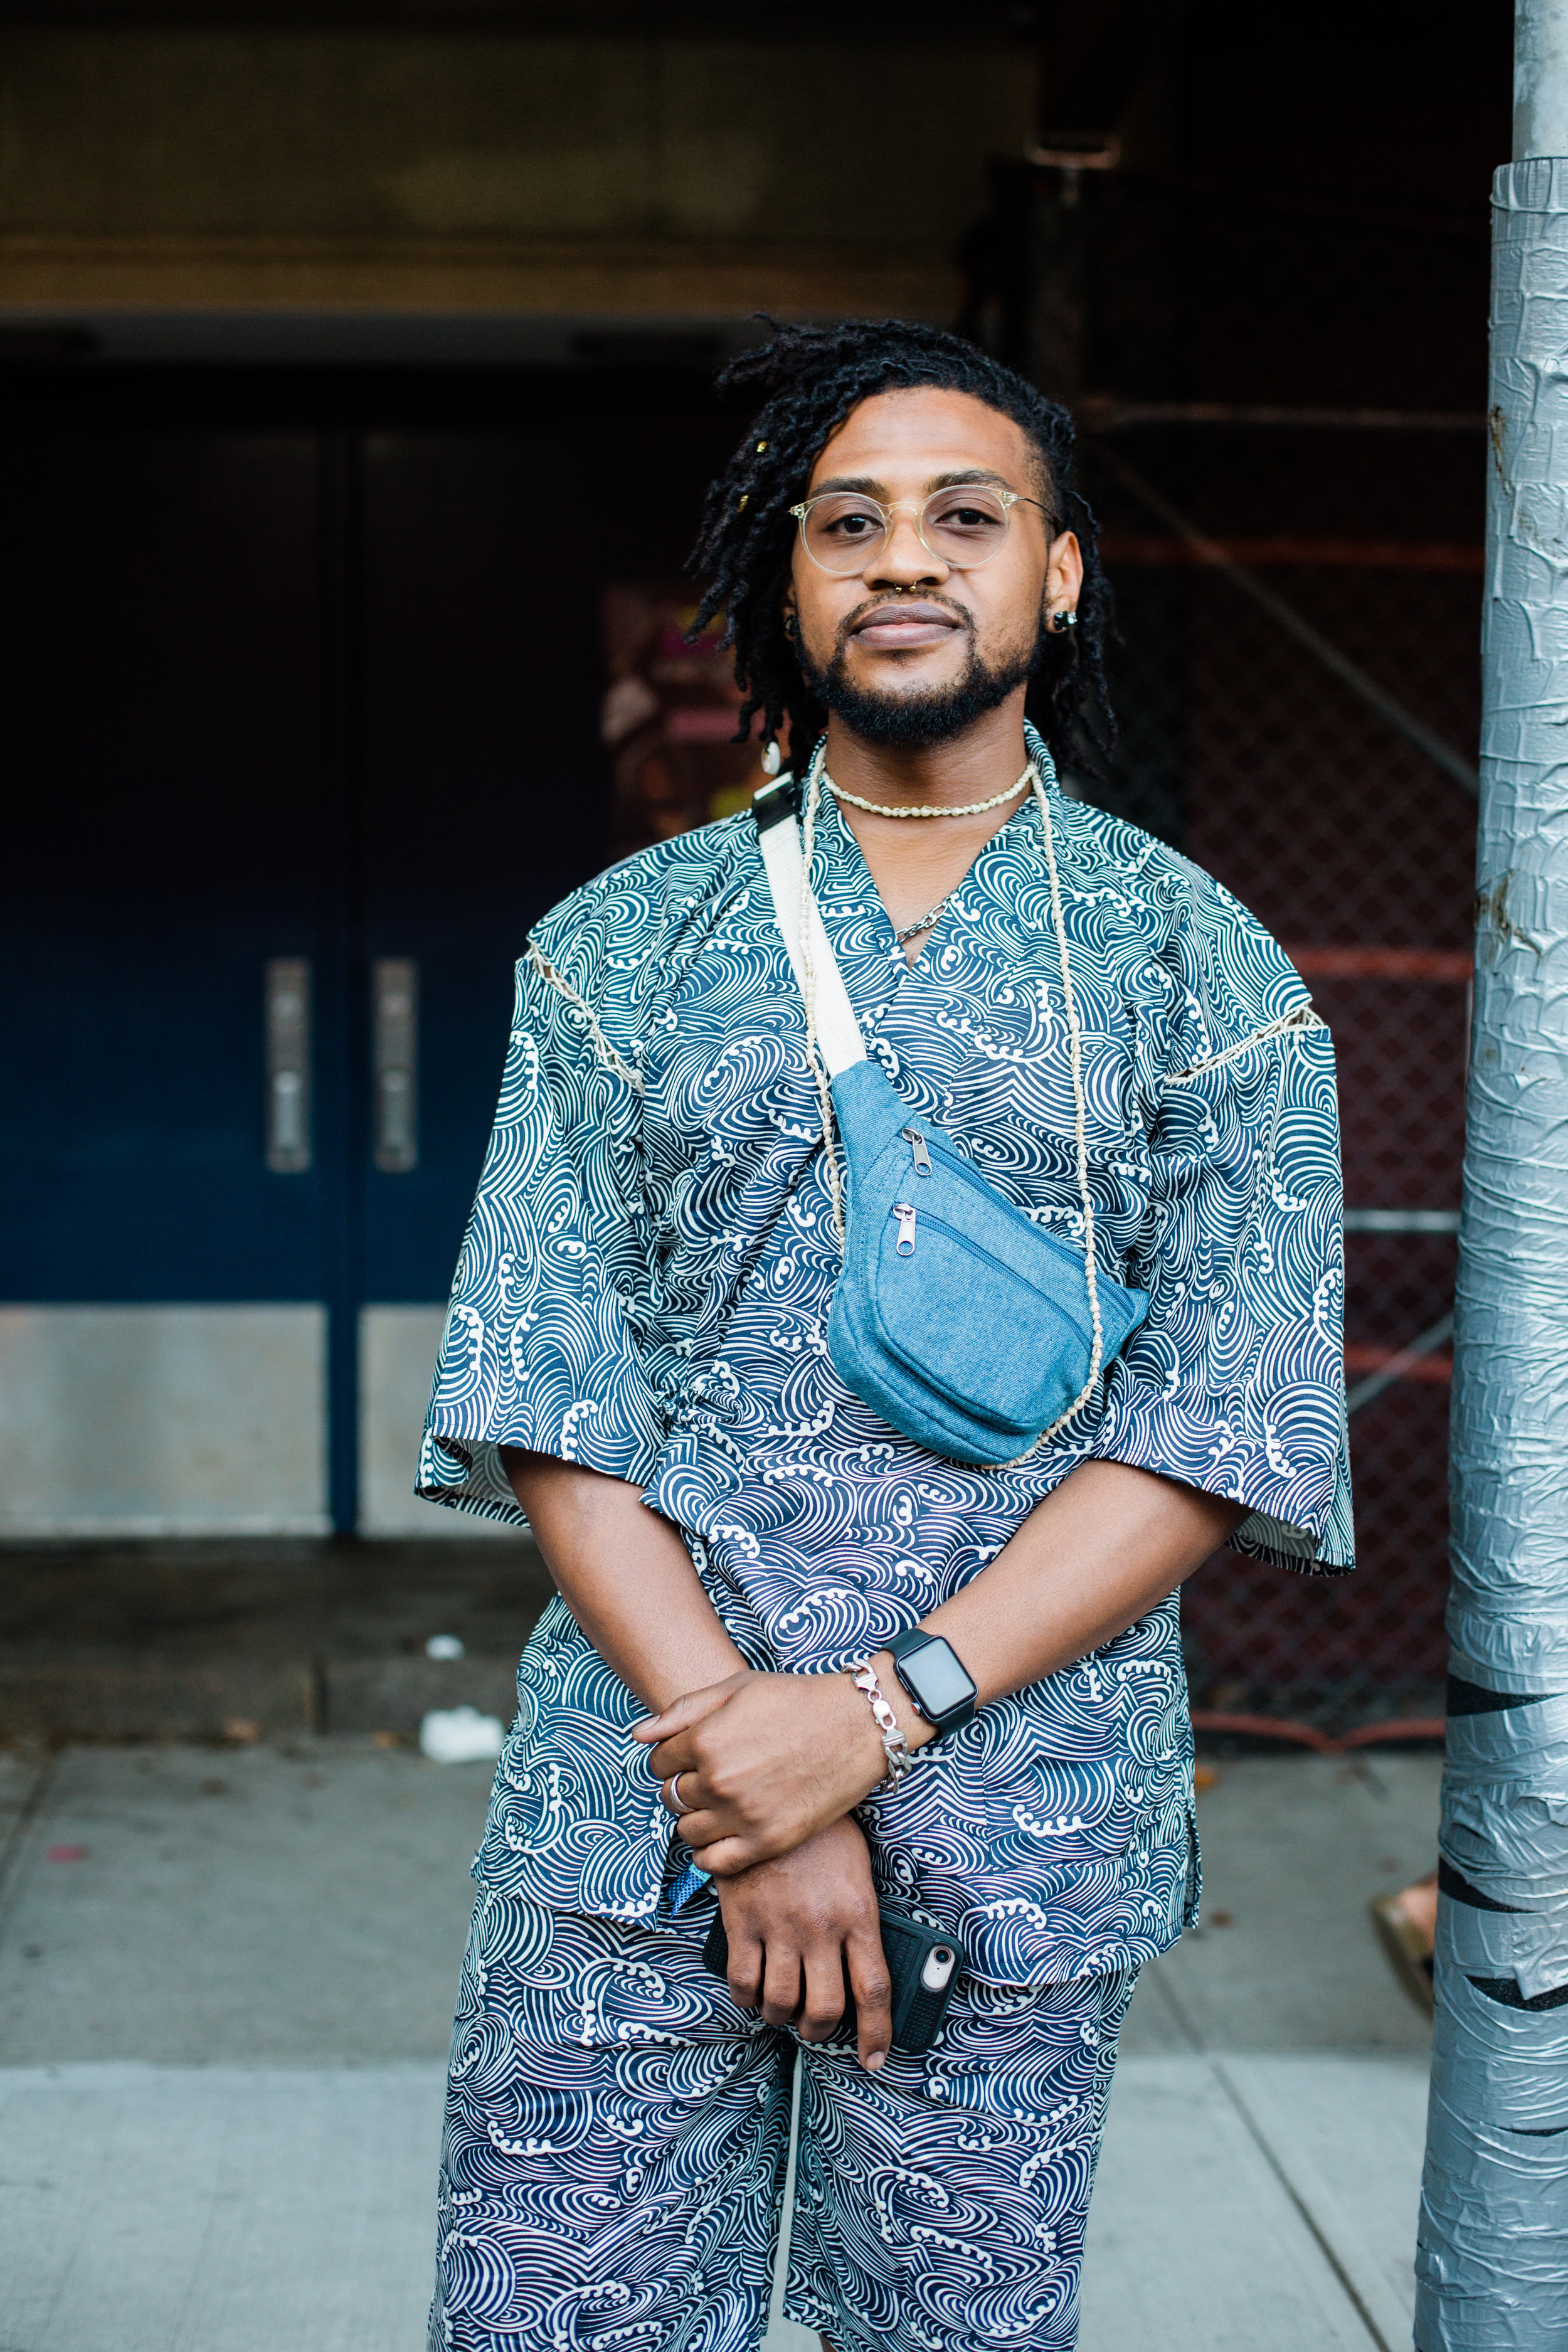 """domo crosby, 28 - """"The future of the resistance looks pretty strong to me as a millennial because of the fact that we are not our grandparents. We will not just stand by and let things happen anymore. We want justice and we will fight for it. We are willing to fight for it. Evidence shows we are willing to die for it. Enough is enough. Things need to change. I feel like it's becoming very strong and it's becoming more relentless.'"""